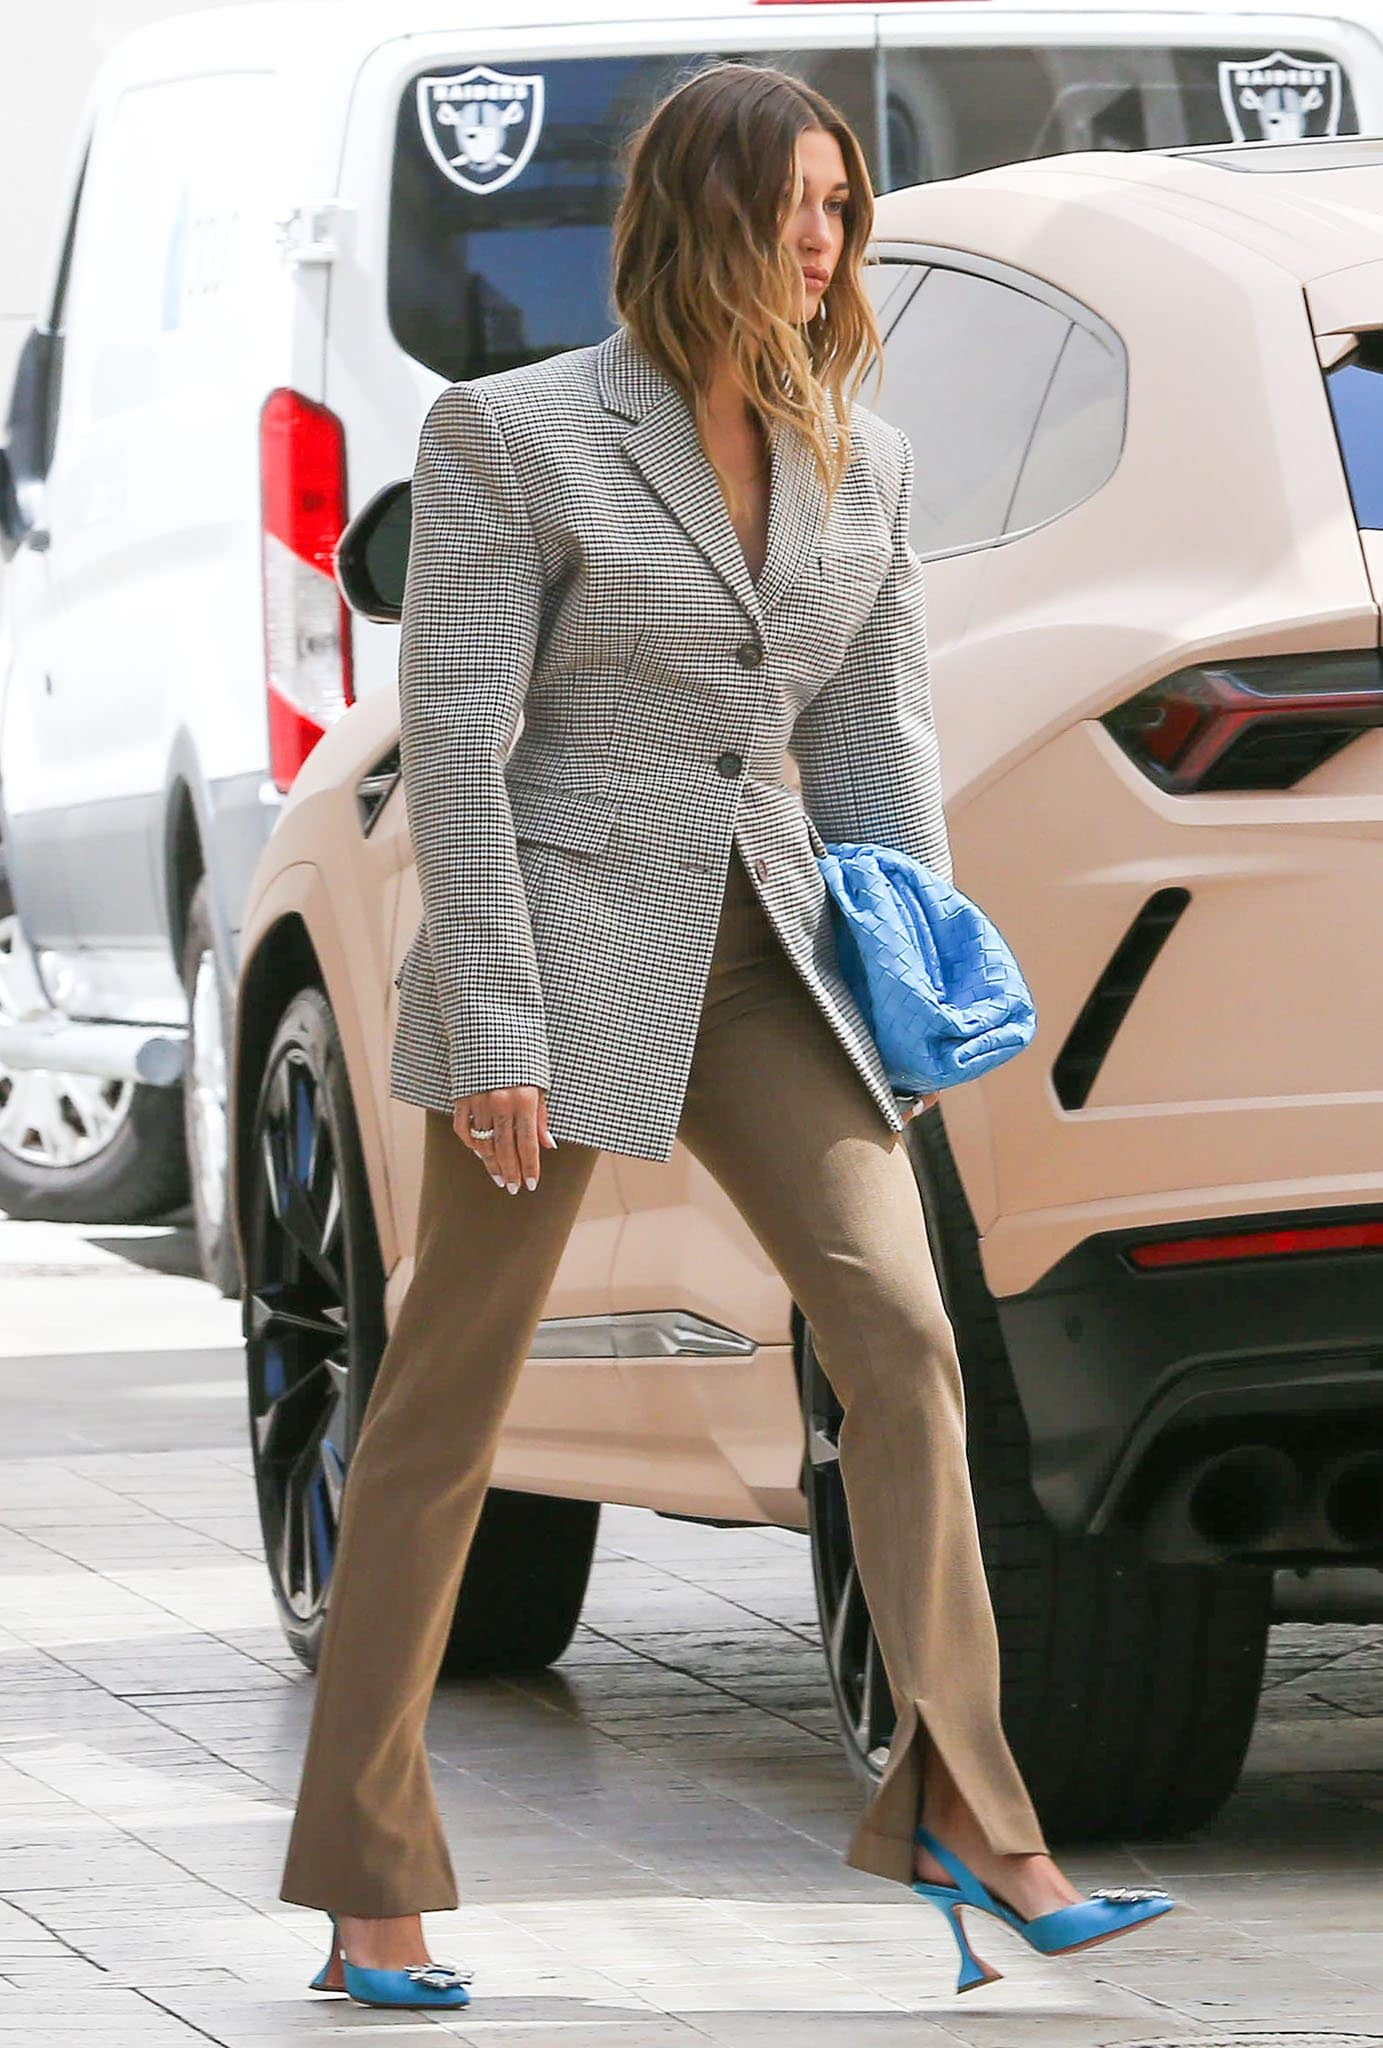 Hailey Bieber highlights her legs in Musier Paris brown pants with bottom slits